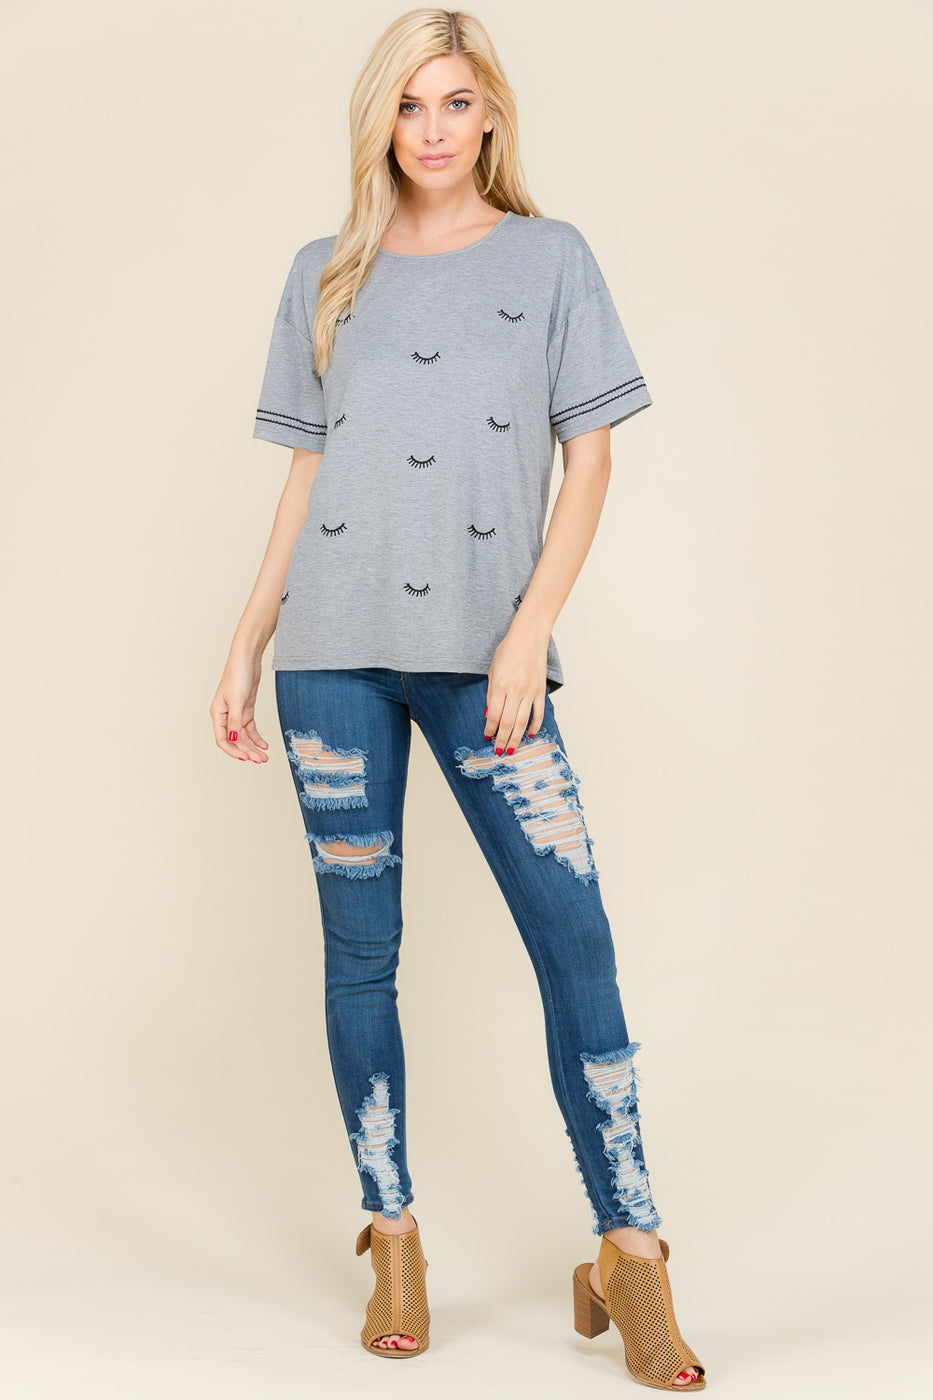 Grey Short Sleeve Top Eyelash Embroider Siin Bees